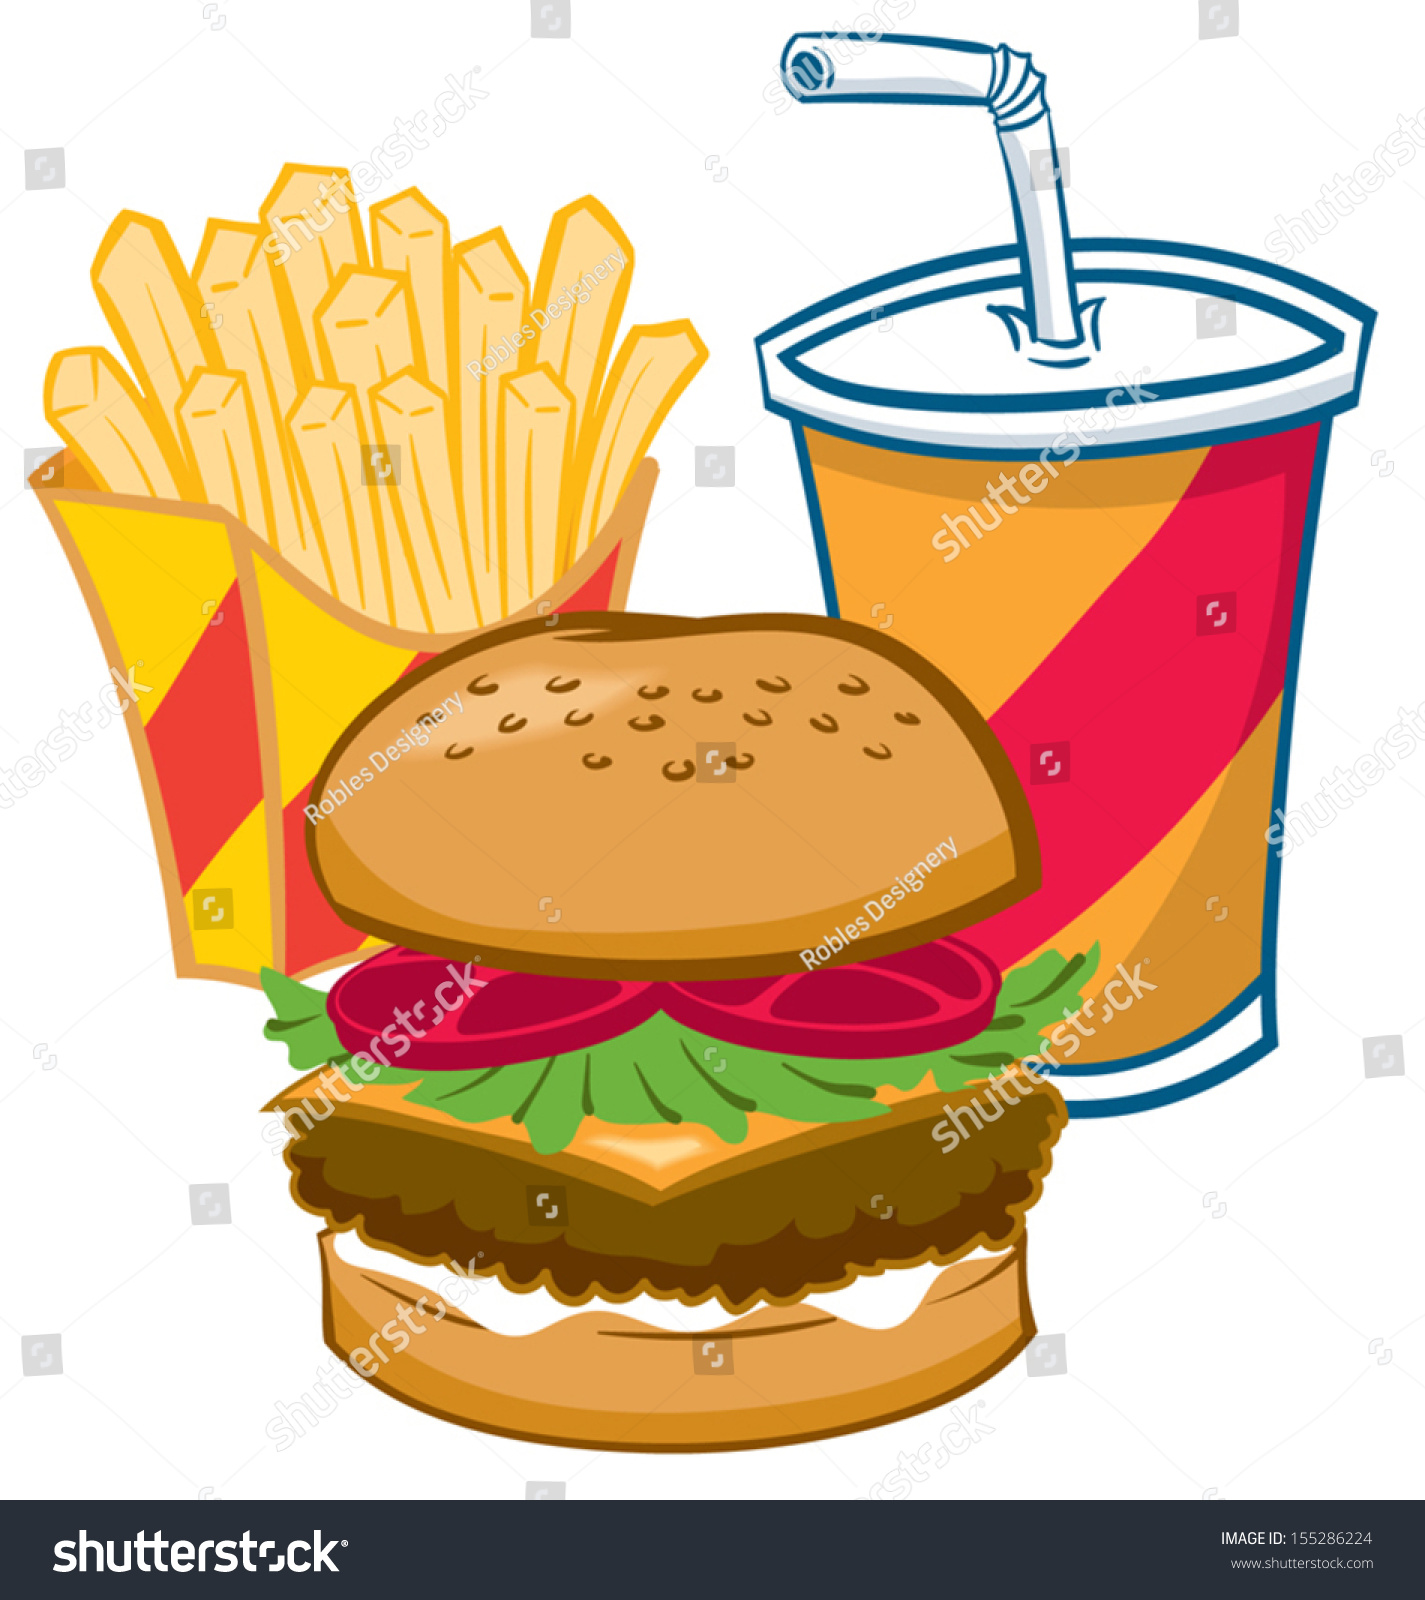 Fast Food Burger Fries And A Soft Drink Stock Vector Illustration ...